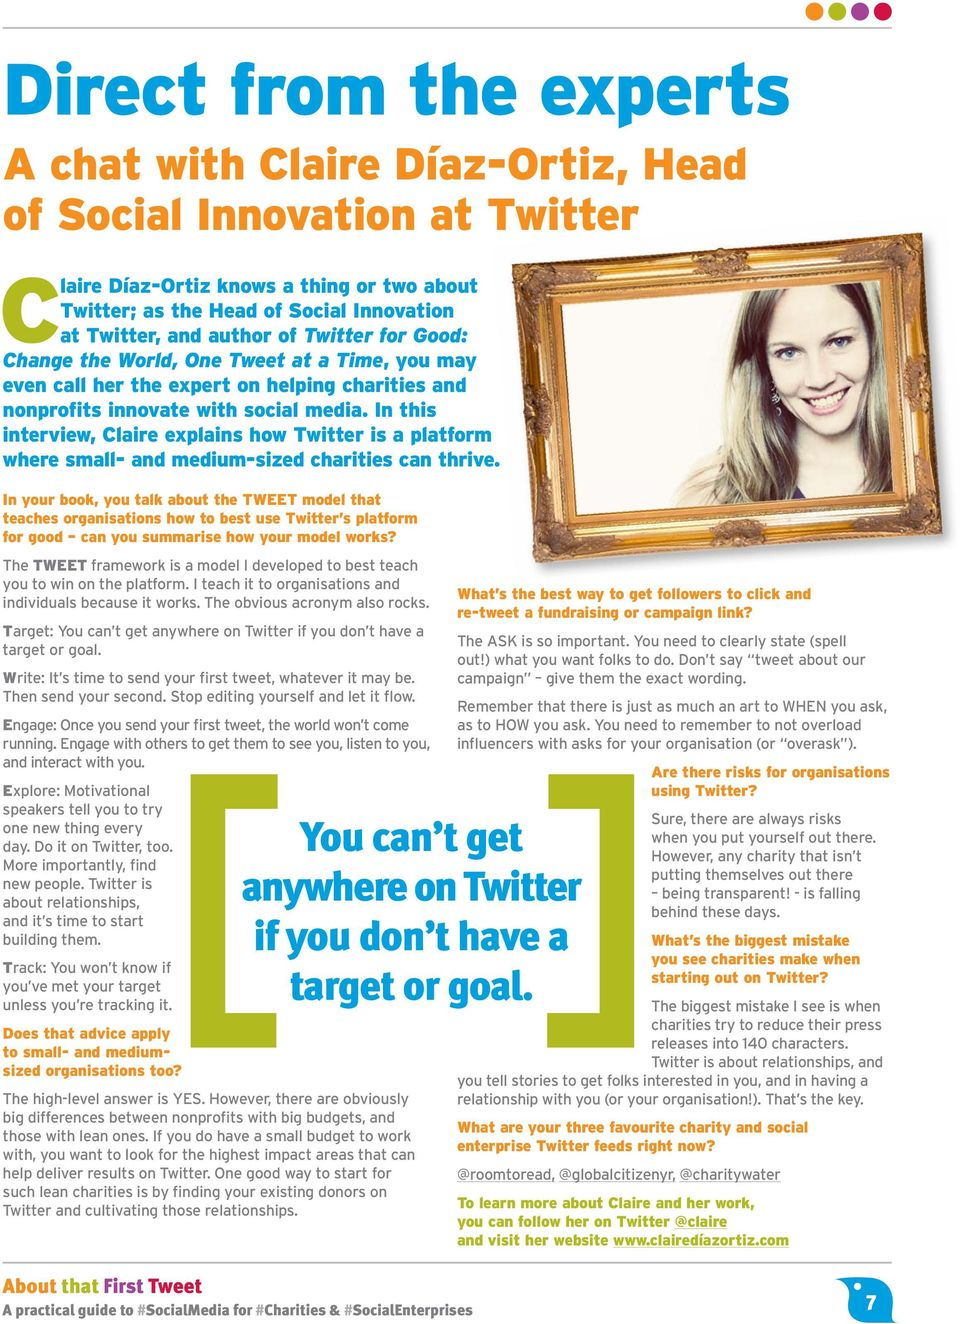 In this interview, Claire explains how Twitter is a platform where small- and medium-sized charities can thrive.